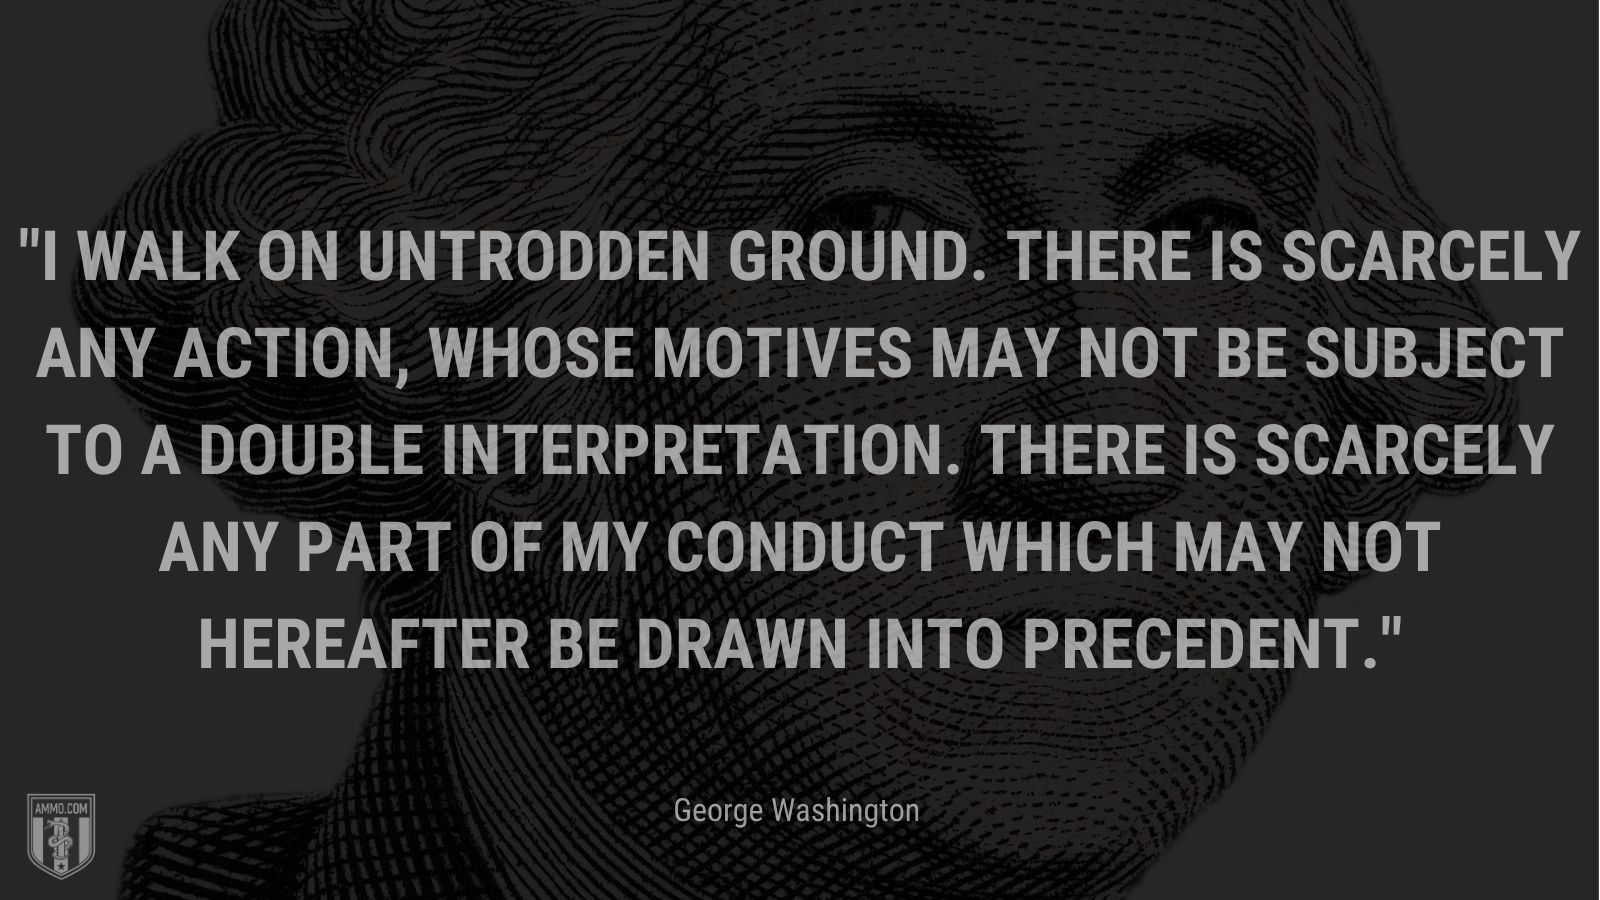 """""""I walk on untrodden ground. There is scarcely any action, whose motives may not be subject to a double interpretation. There is scarcely any part of my conduct which may not hereafter be drawn into precedent."""" - George Washington"""